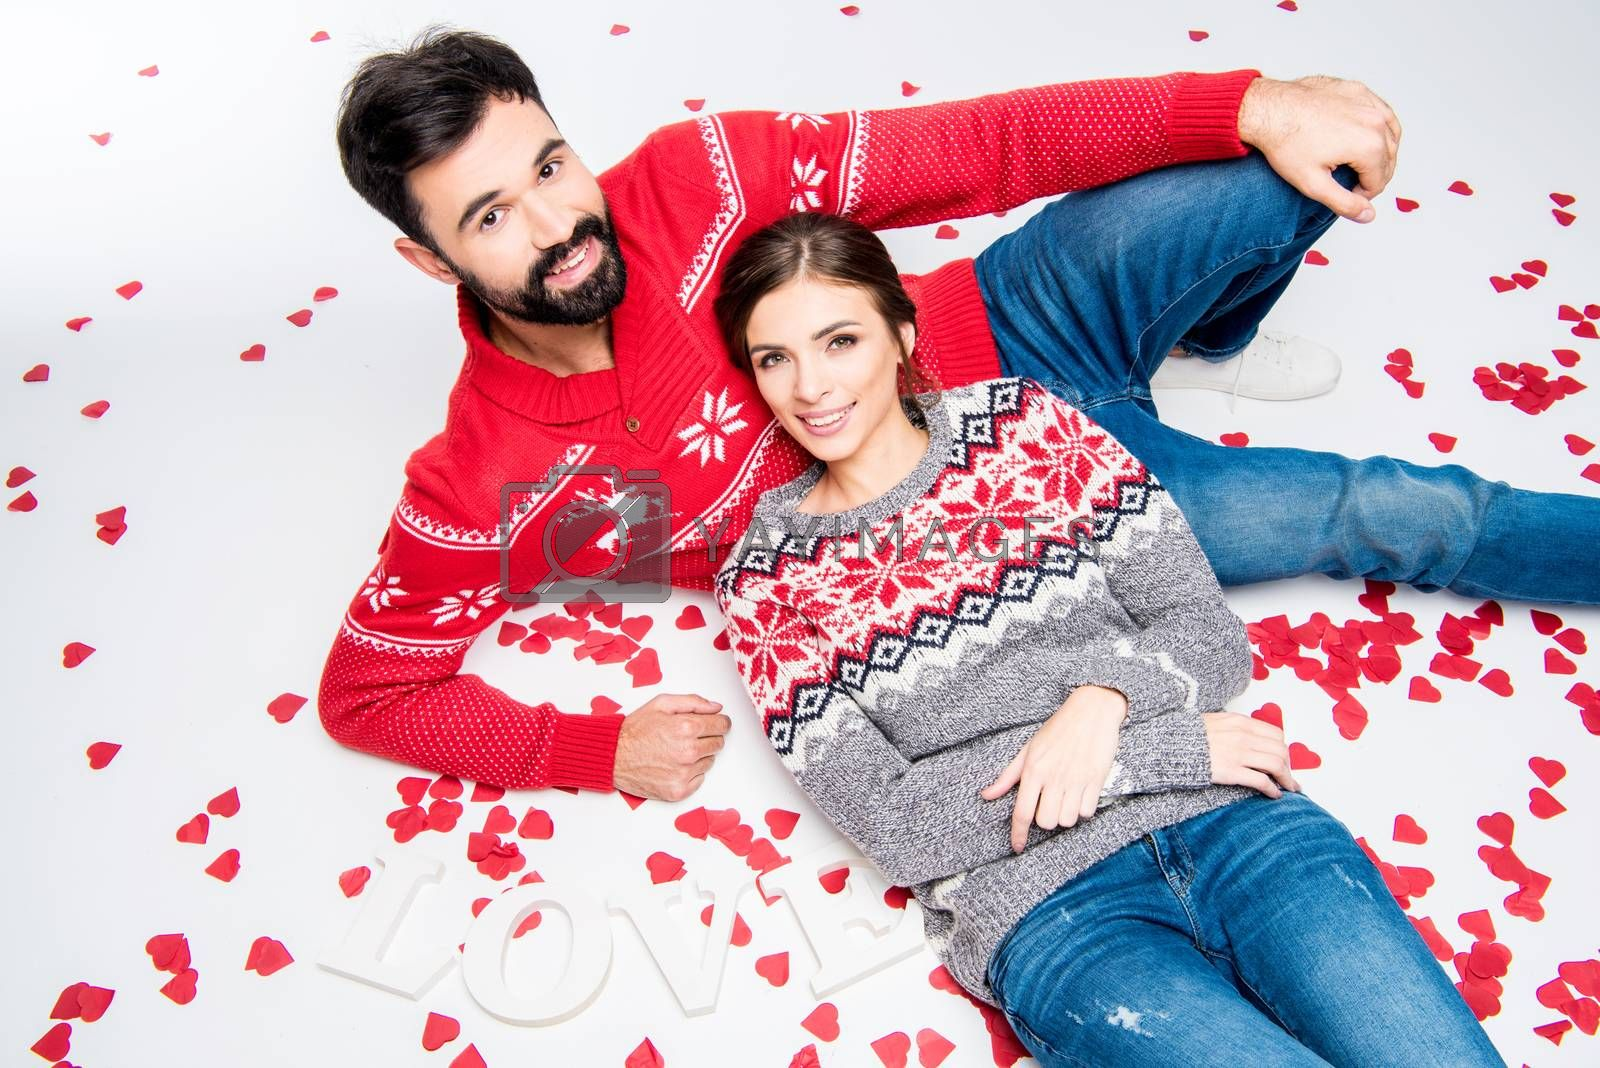 Loving couple lying together on white floor with pile of red hearts and word love